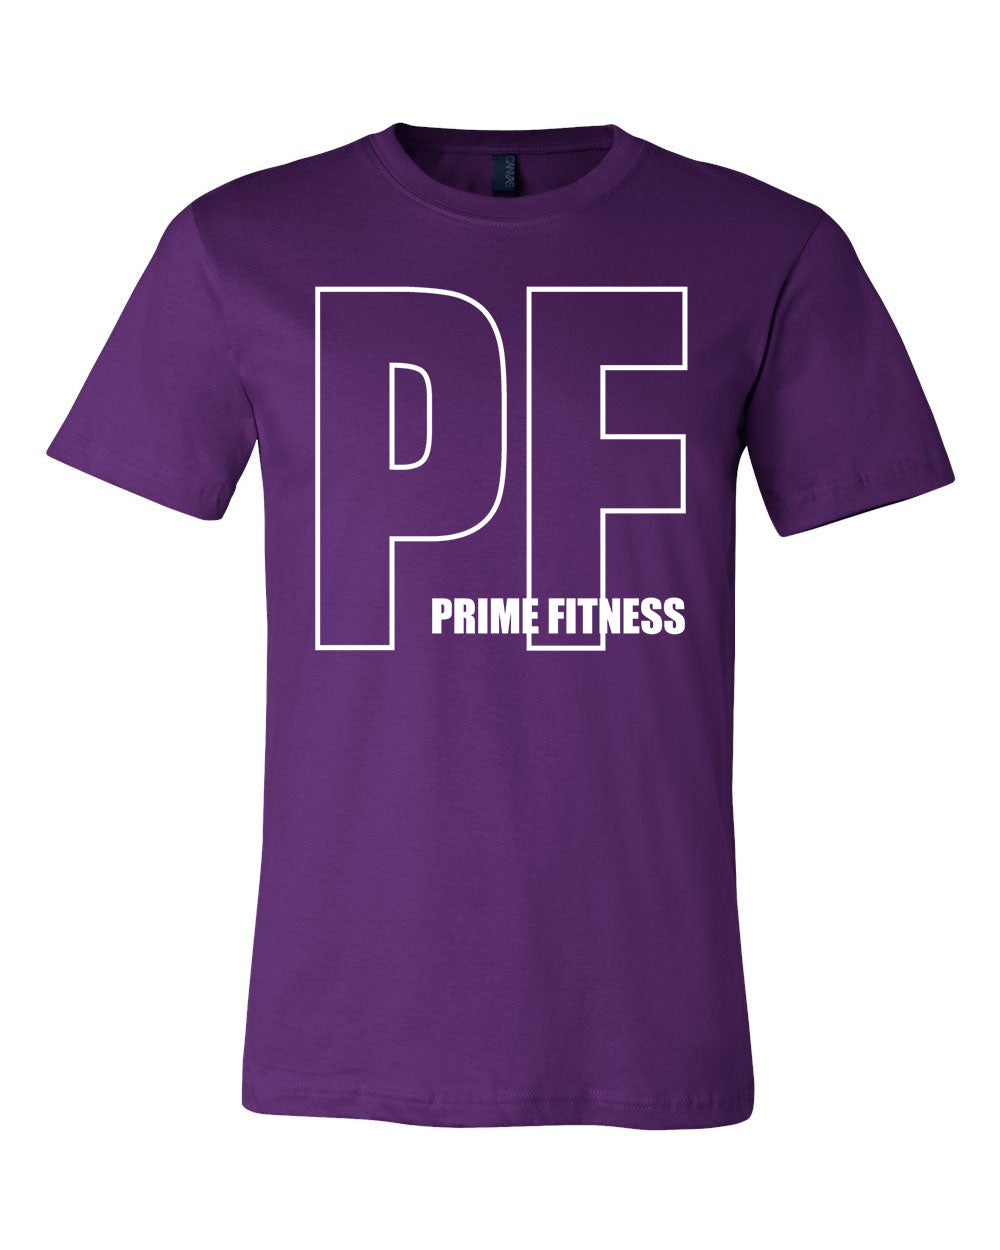 Outline Prime Fitness Colored Tee - Paws & Prints Studio